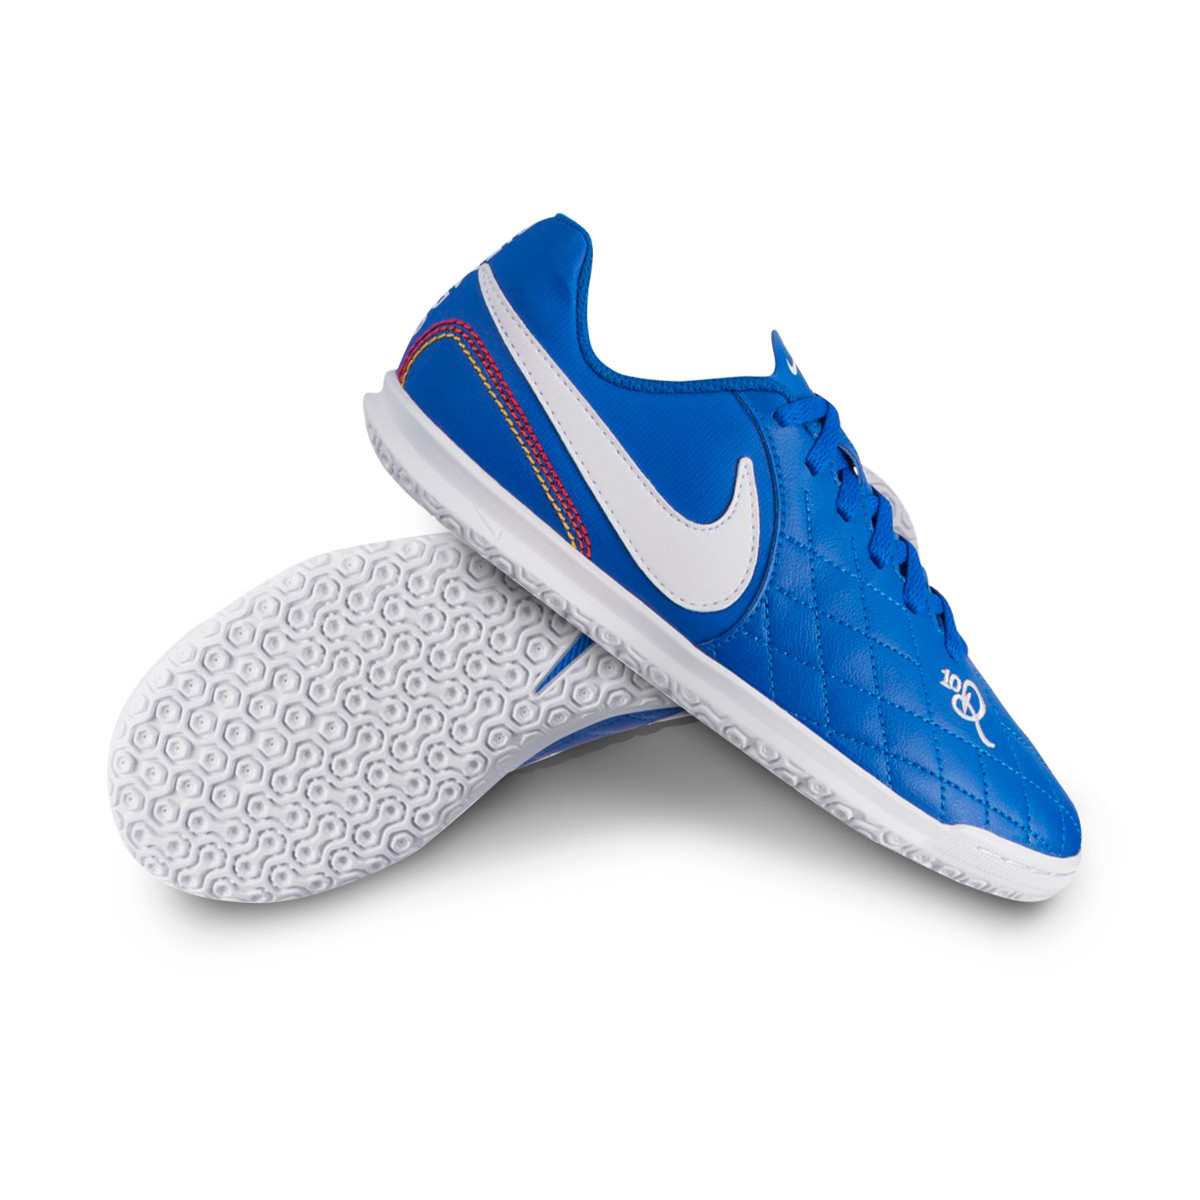 reputable site b326d 3f9c2 Nike Tiempo LegendX VII Club 10R IC Niño Futsal Boot